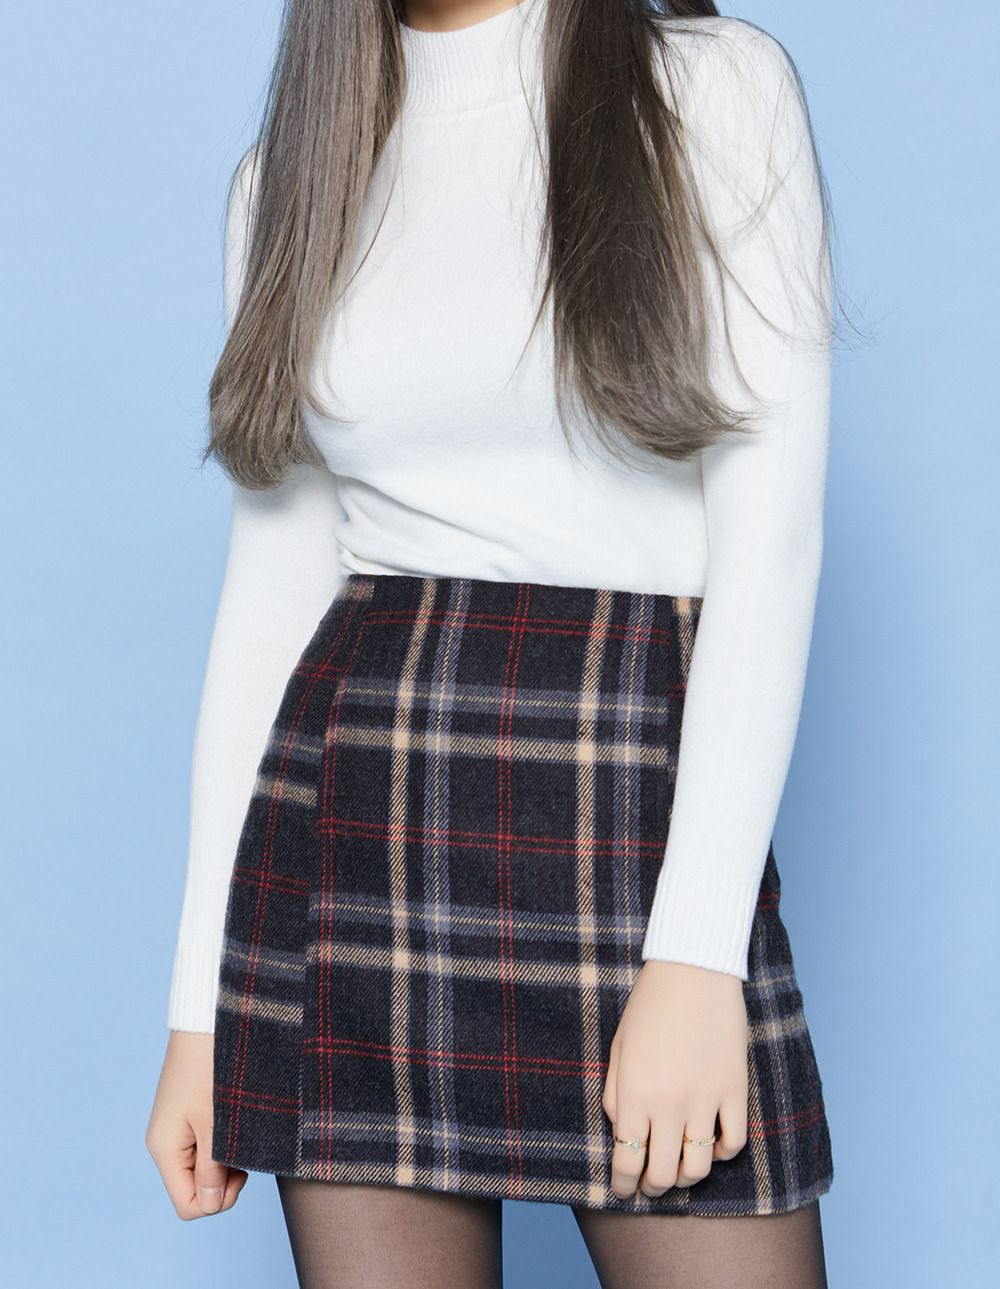 bf46a774c Dove Check Skirt | Korean Fashion | Fashion, Winter skirt outfit ...